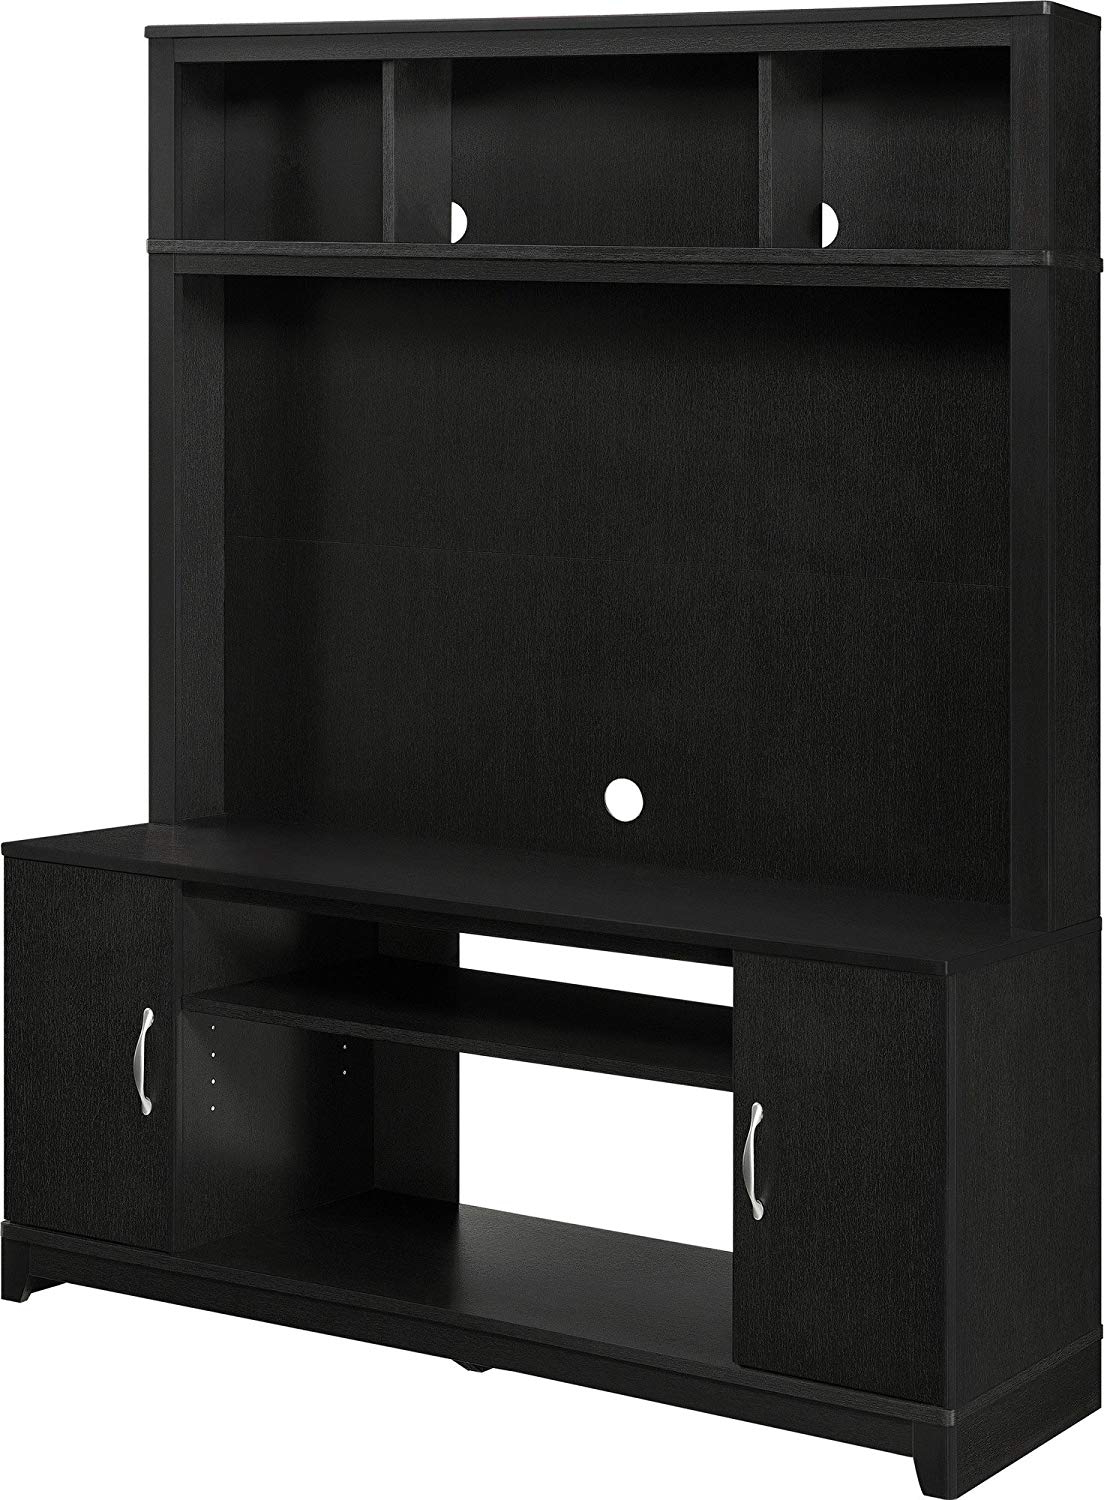 2018 Noah 75 Inch Tv Stands Throughout Amazon: Home Tv Stands Wood Entertainment Media Center For Flat (View 2 of 20)